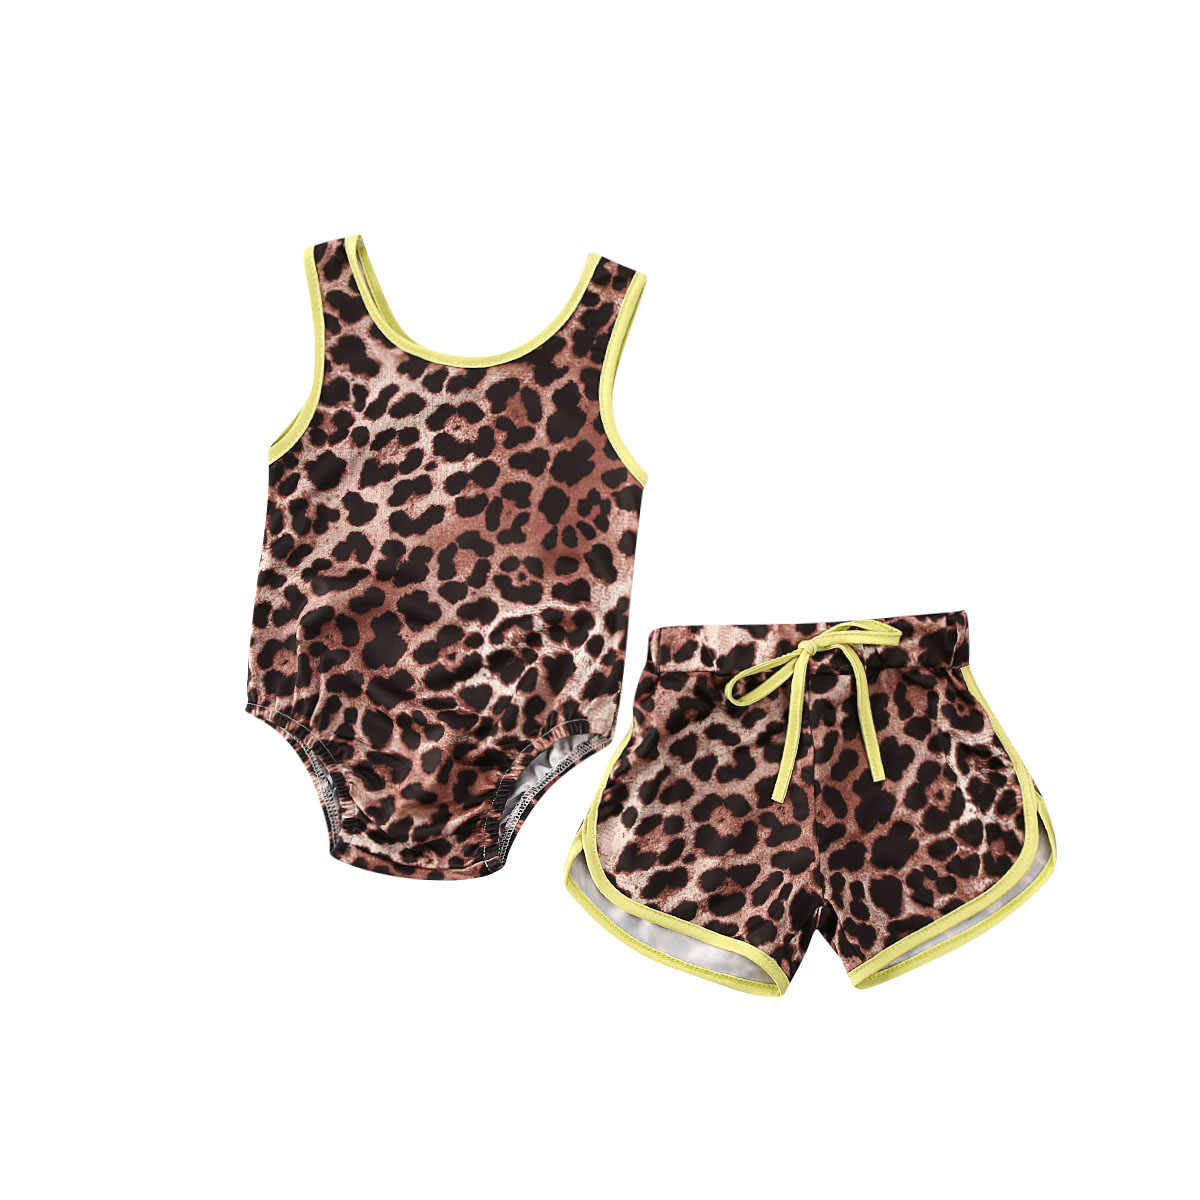 0-24M New Toddler Baby Girls Swimsuit 2pcs Leopard Print Bathing Tankini Bikini Set Swimwear Beachwear